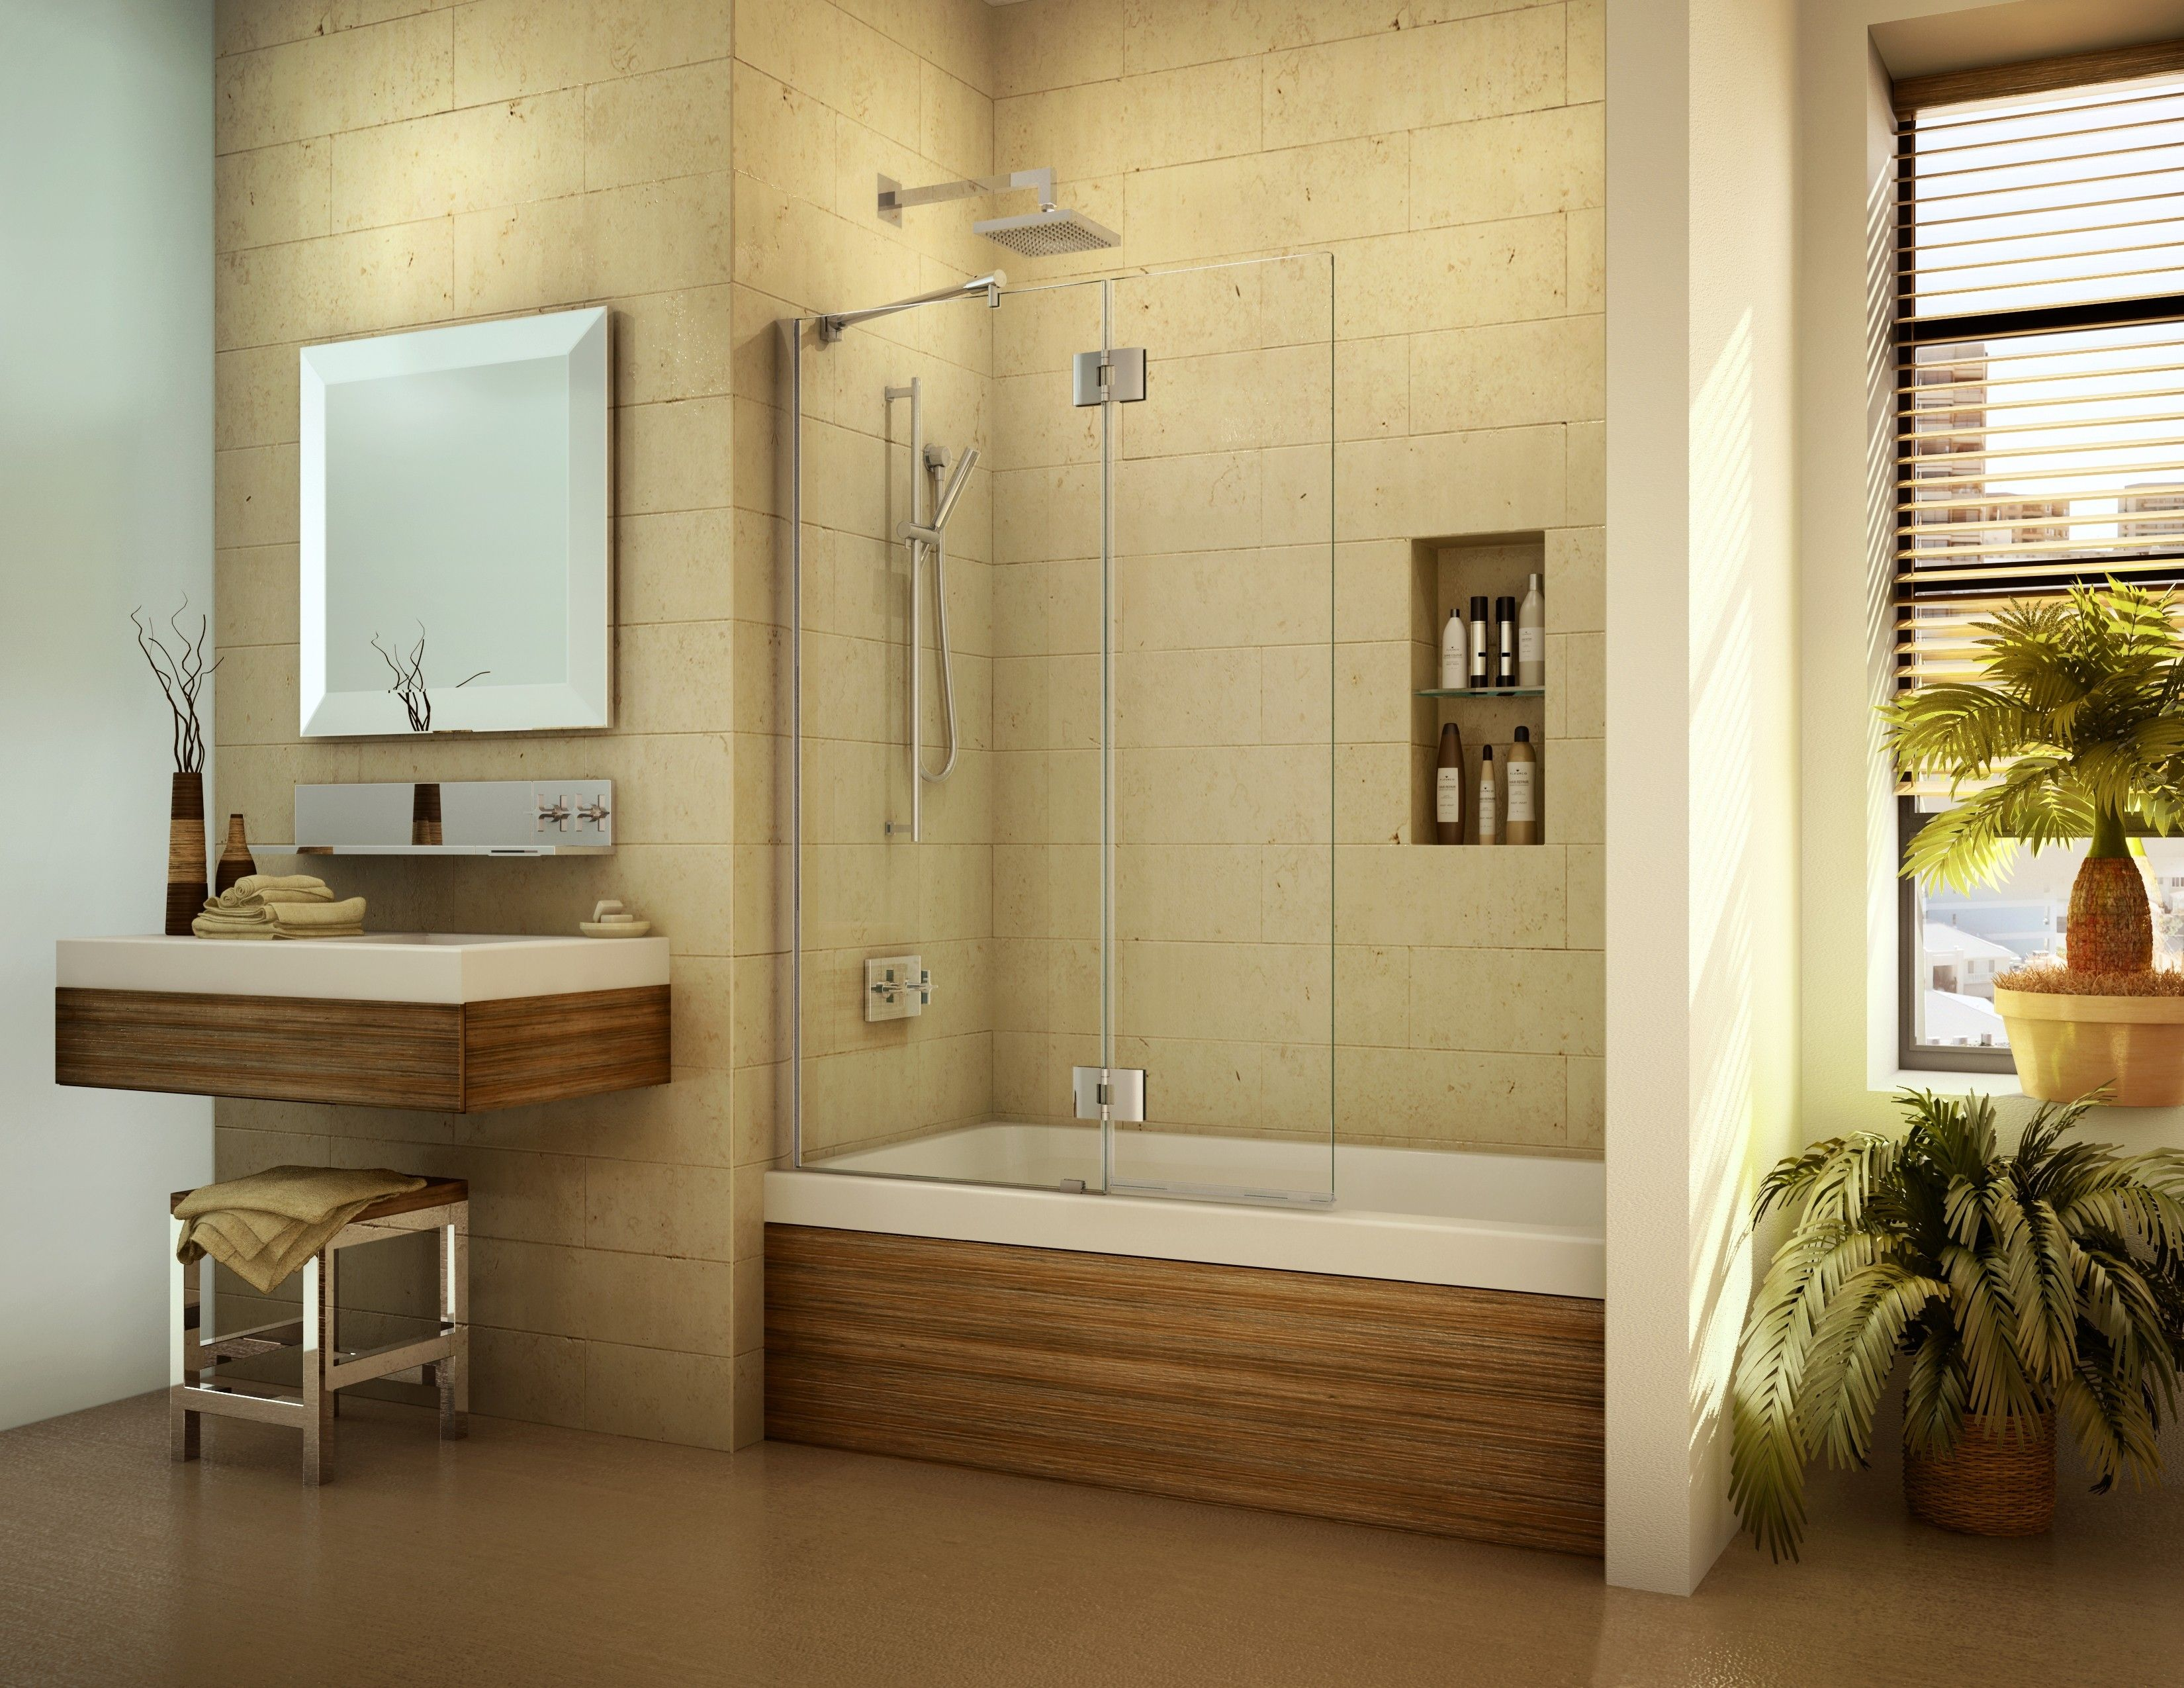 Bathroom Tubs And Sinks quotes House Designer kitchen